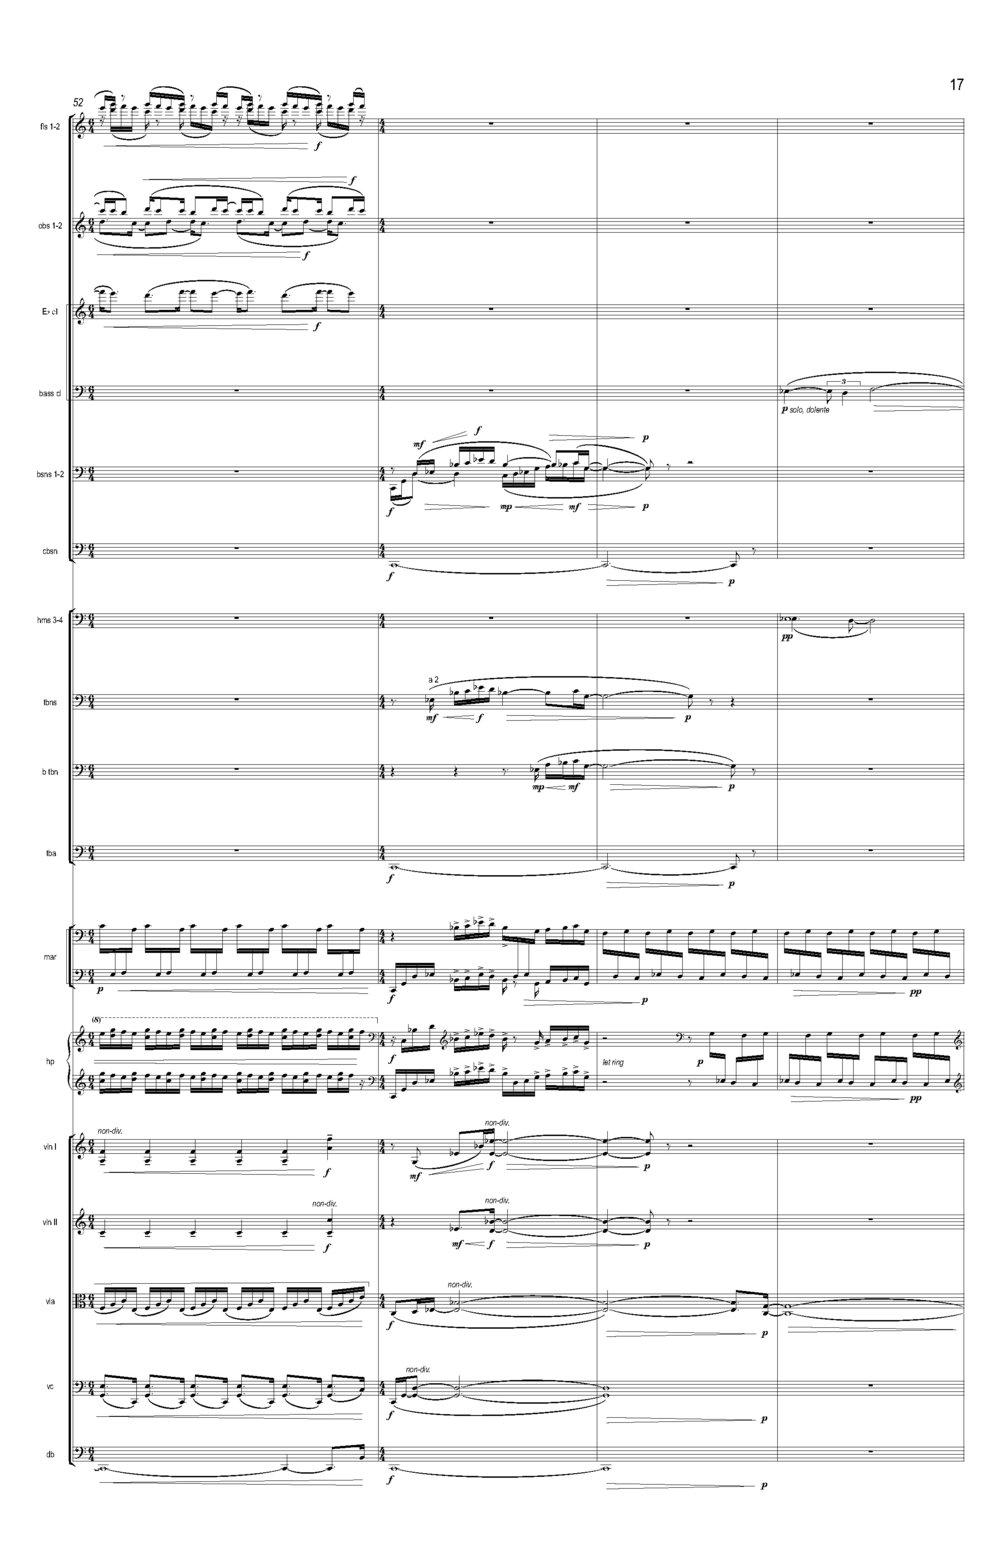 Ciach_Collective Uncommon REVISED_Full Score (Feb 2017)_Seite_23.jpg